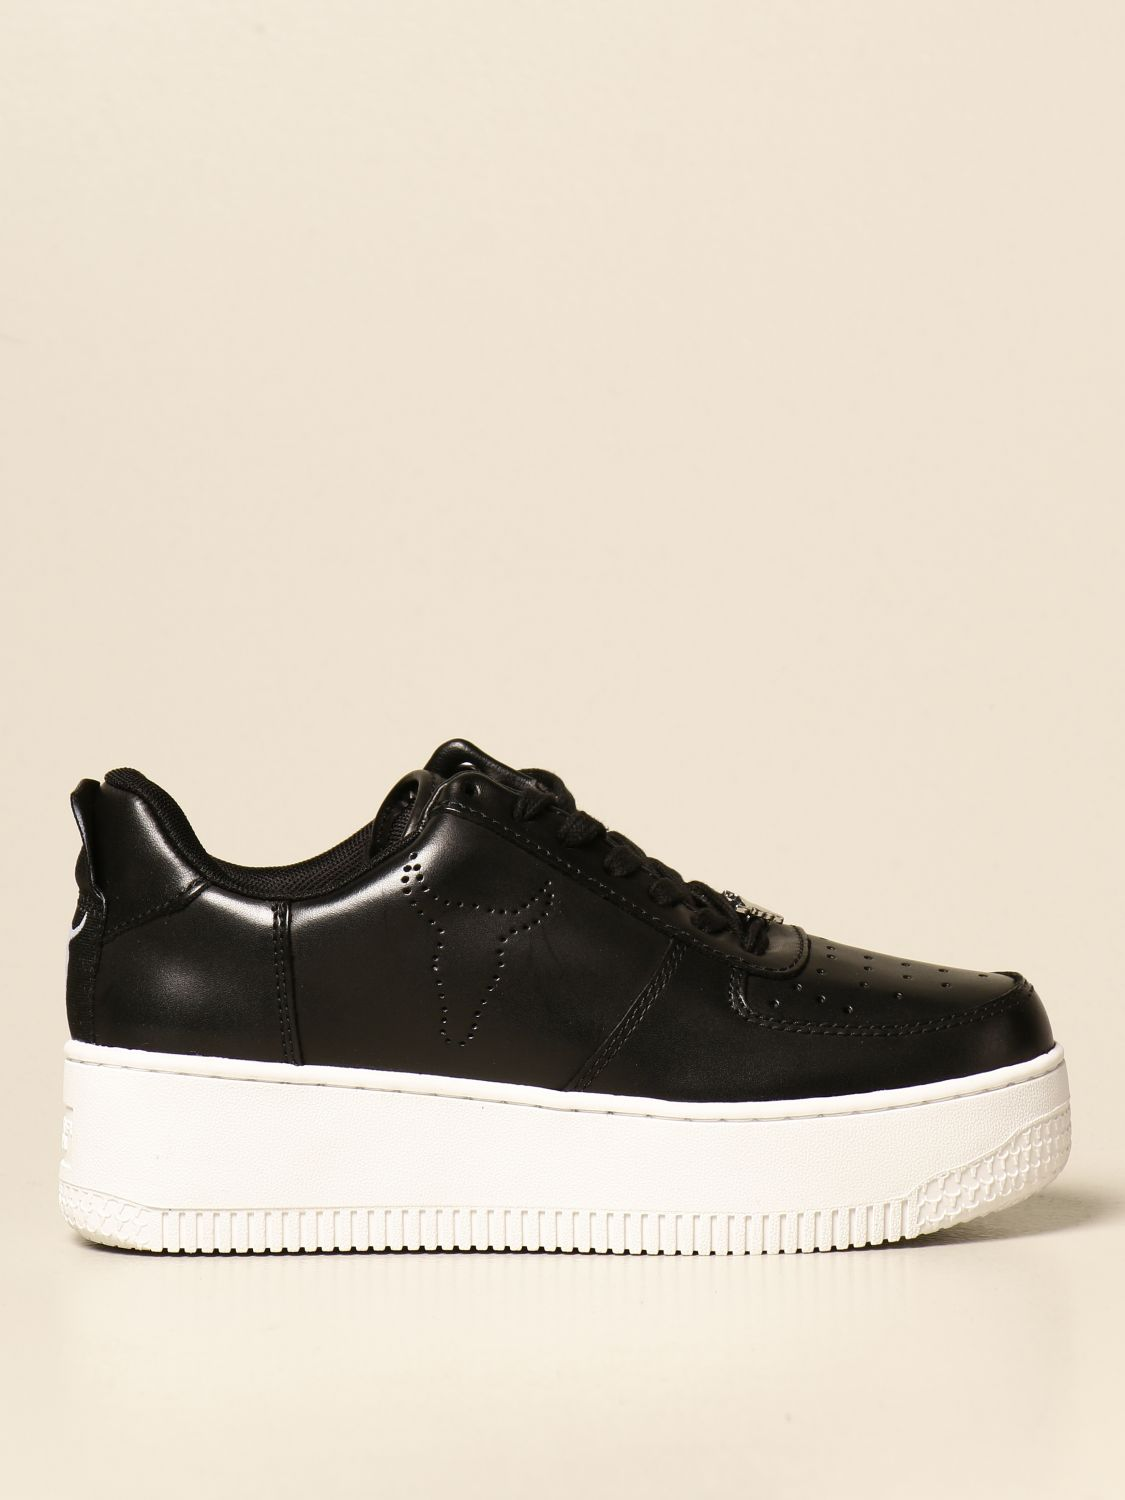 Sneakers Windsorsmith Asap: Windsorsmith sneakers in leather black 1 1